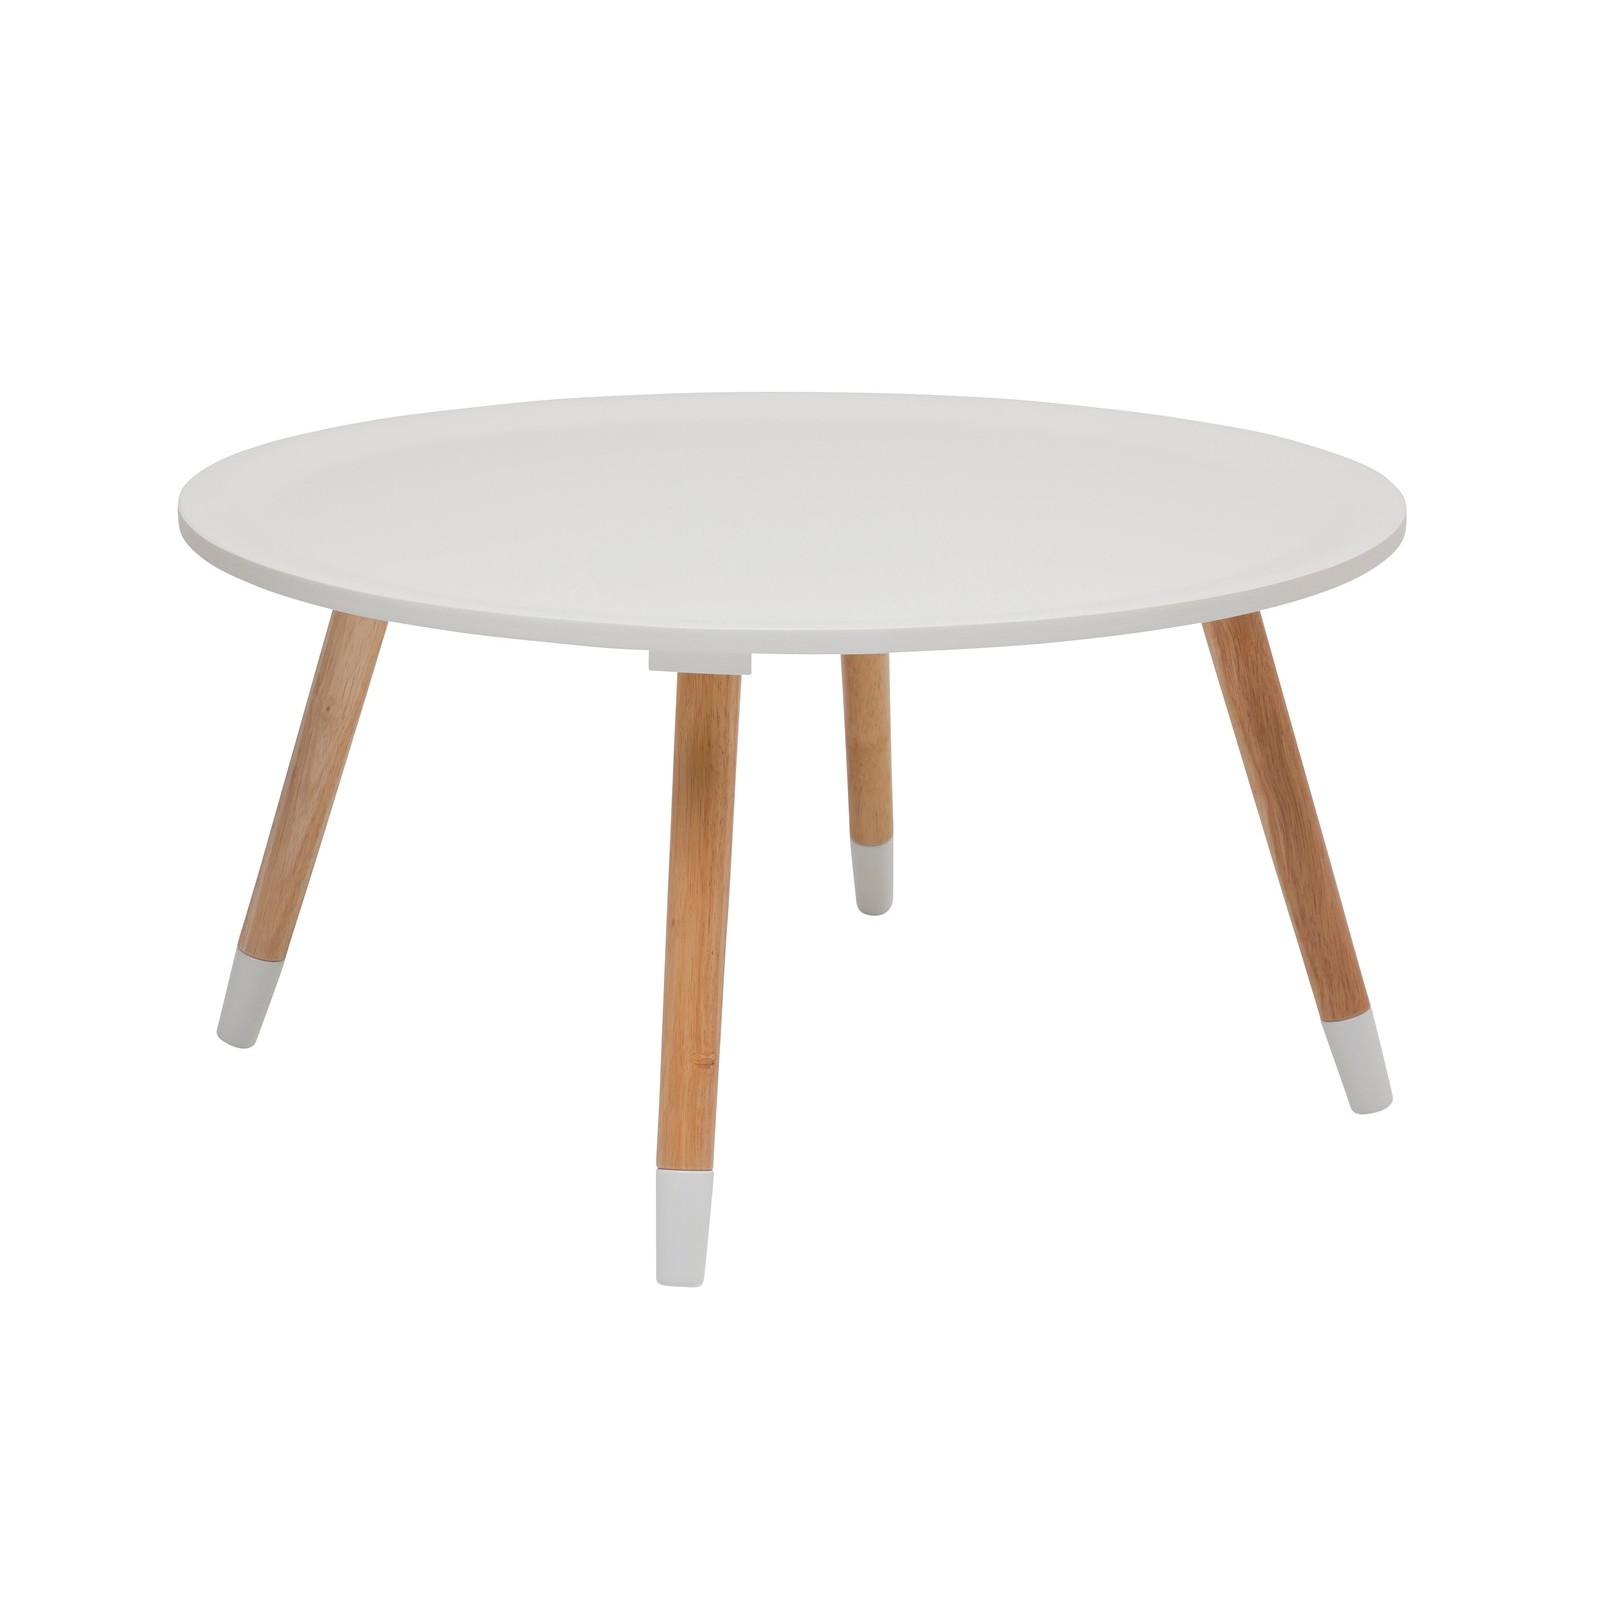 Table basse scandinave blanche blossom kare design - Table basse ronde blanche ...